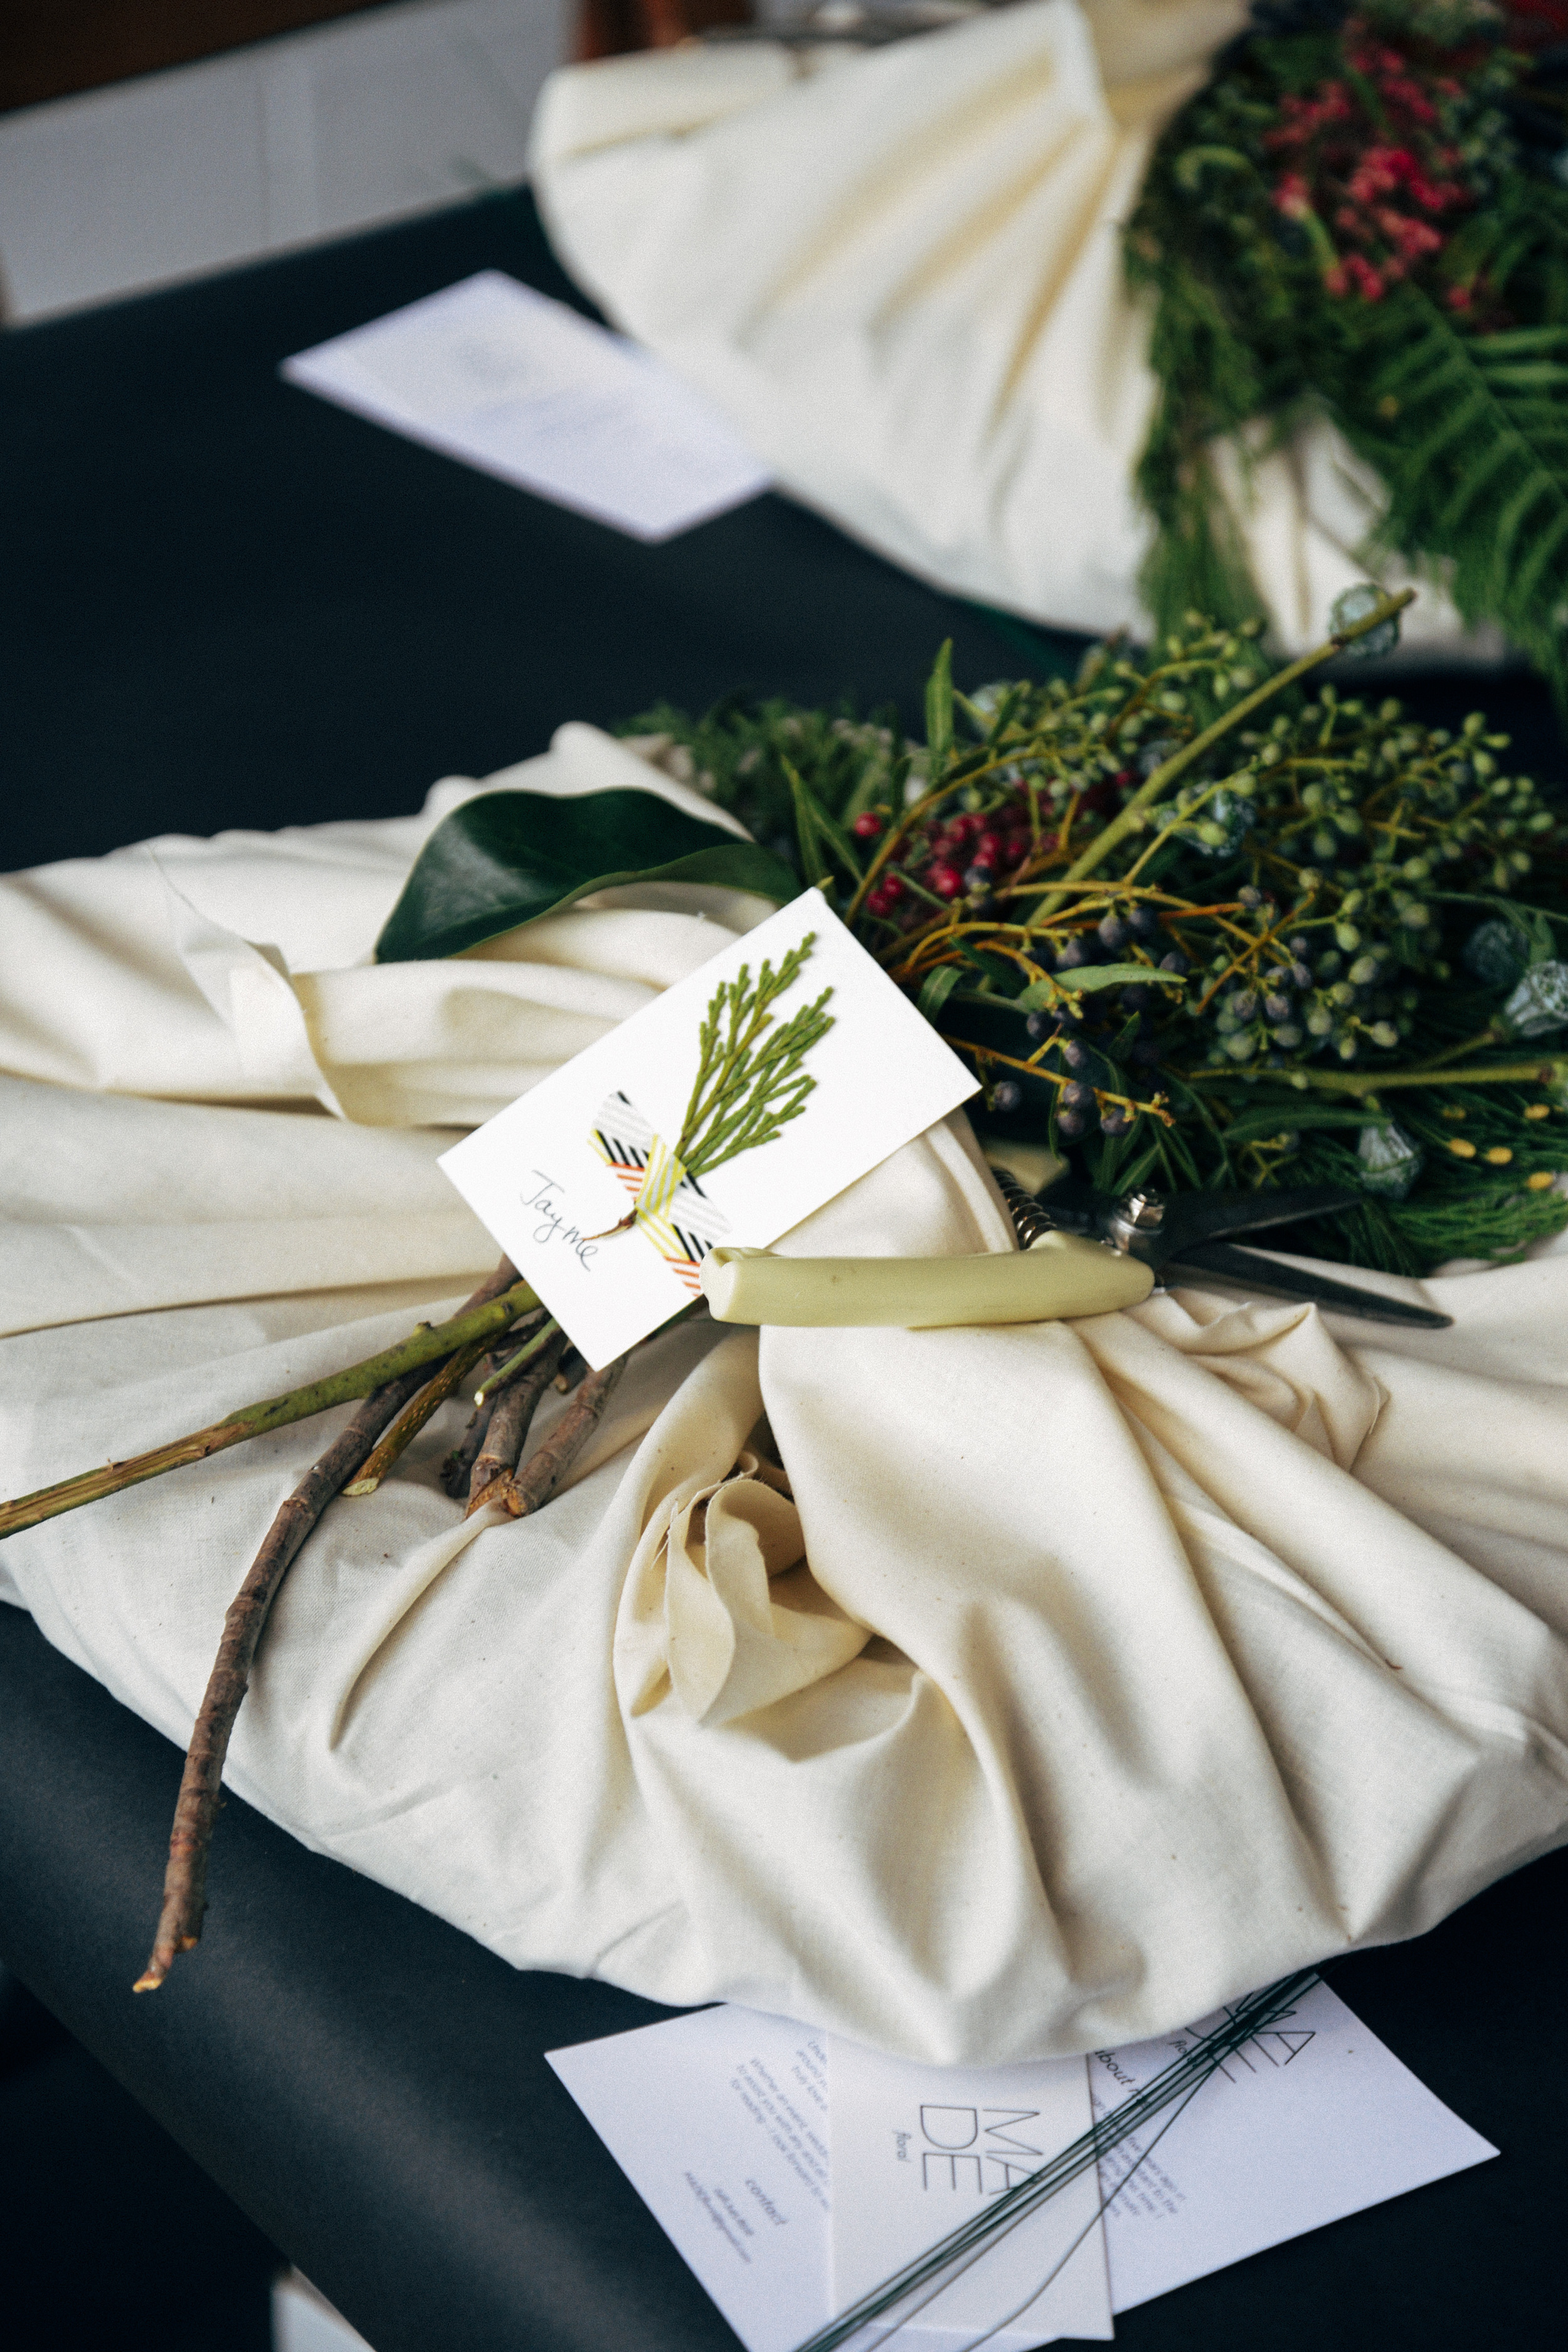 DIY: How To Make A Wreath - The Midwestival